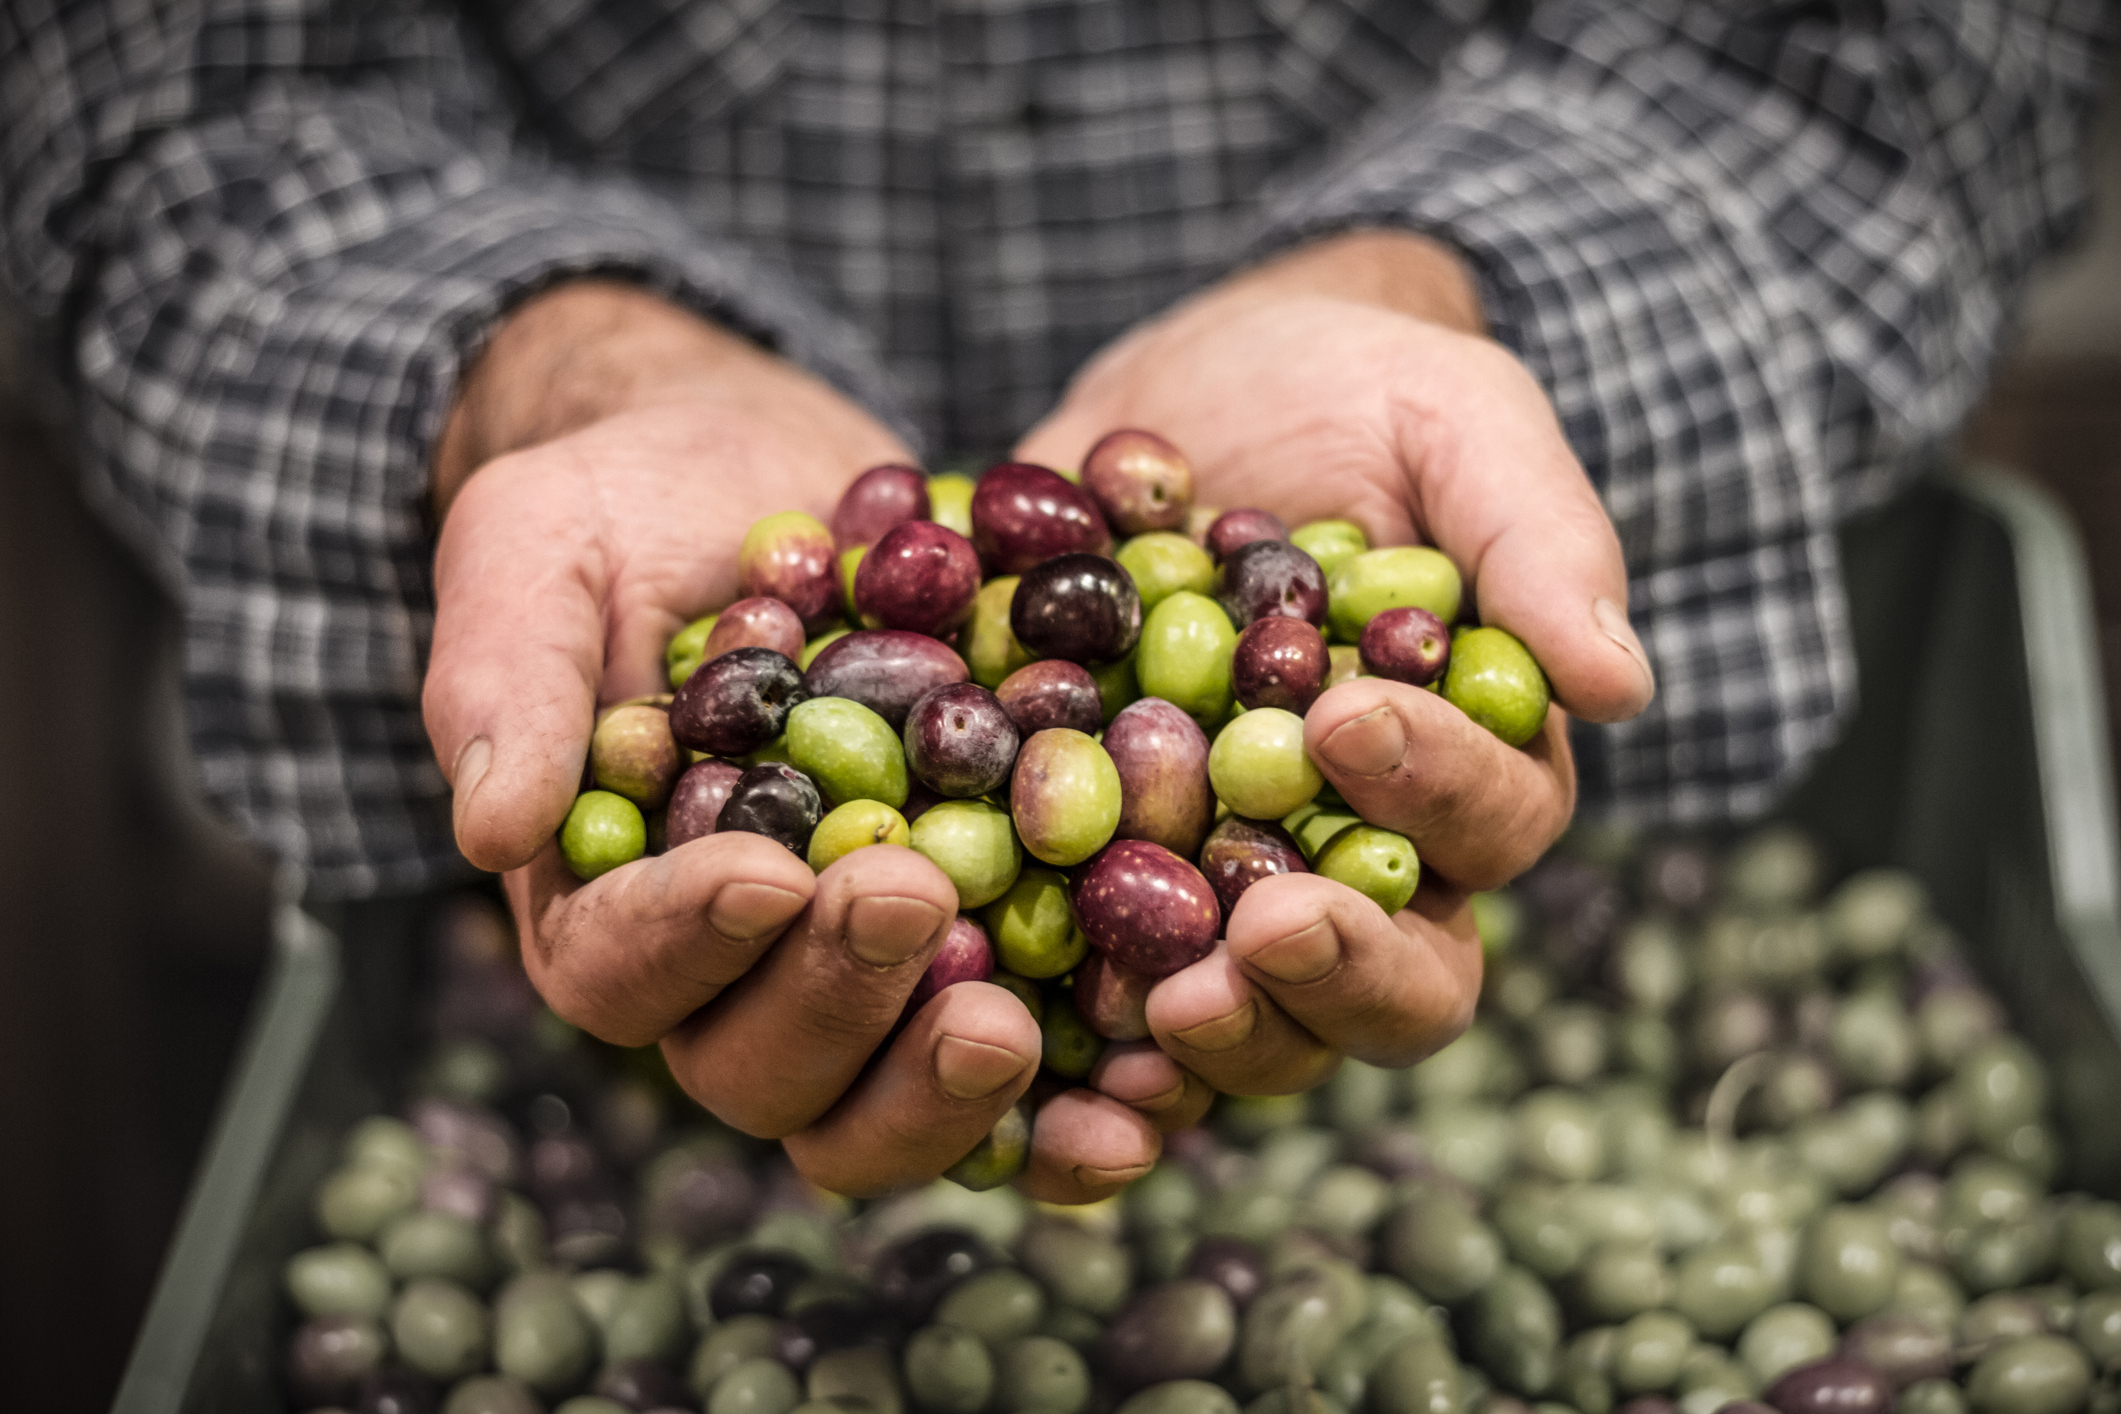 Our family prides itself on a tradition carried on from generation to generation: a careful process of making rich extra virgin olive oil from homegrown olives. You will receive a firsthand a view of this process while enjoying and understanding olive oil production during your week's tour. -